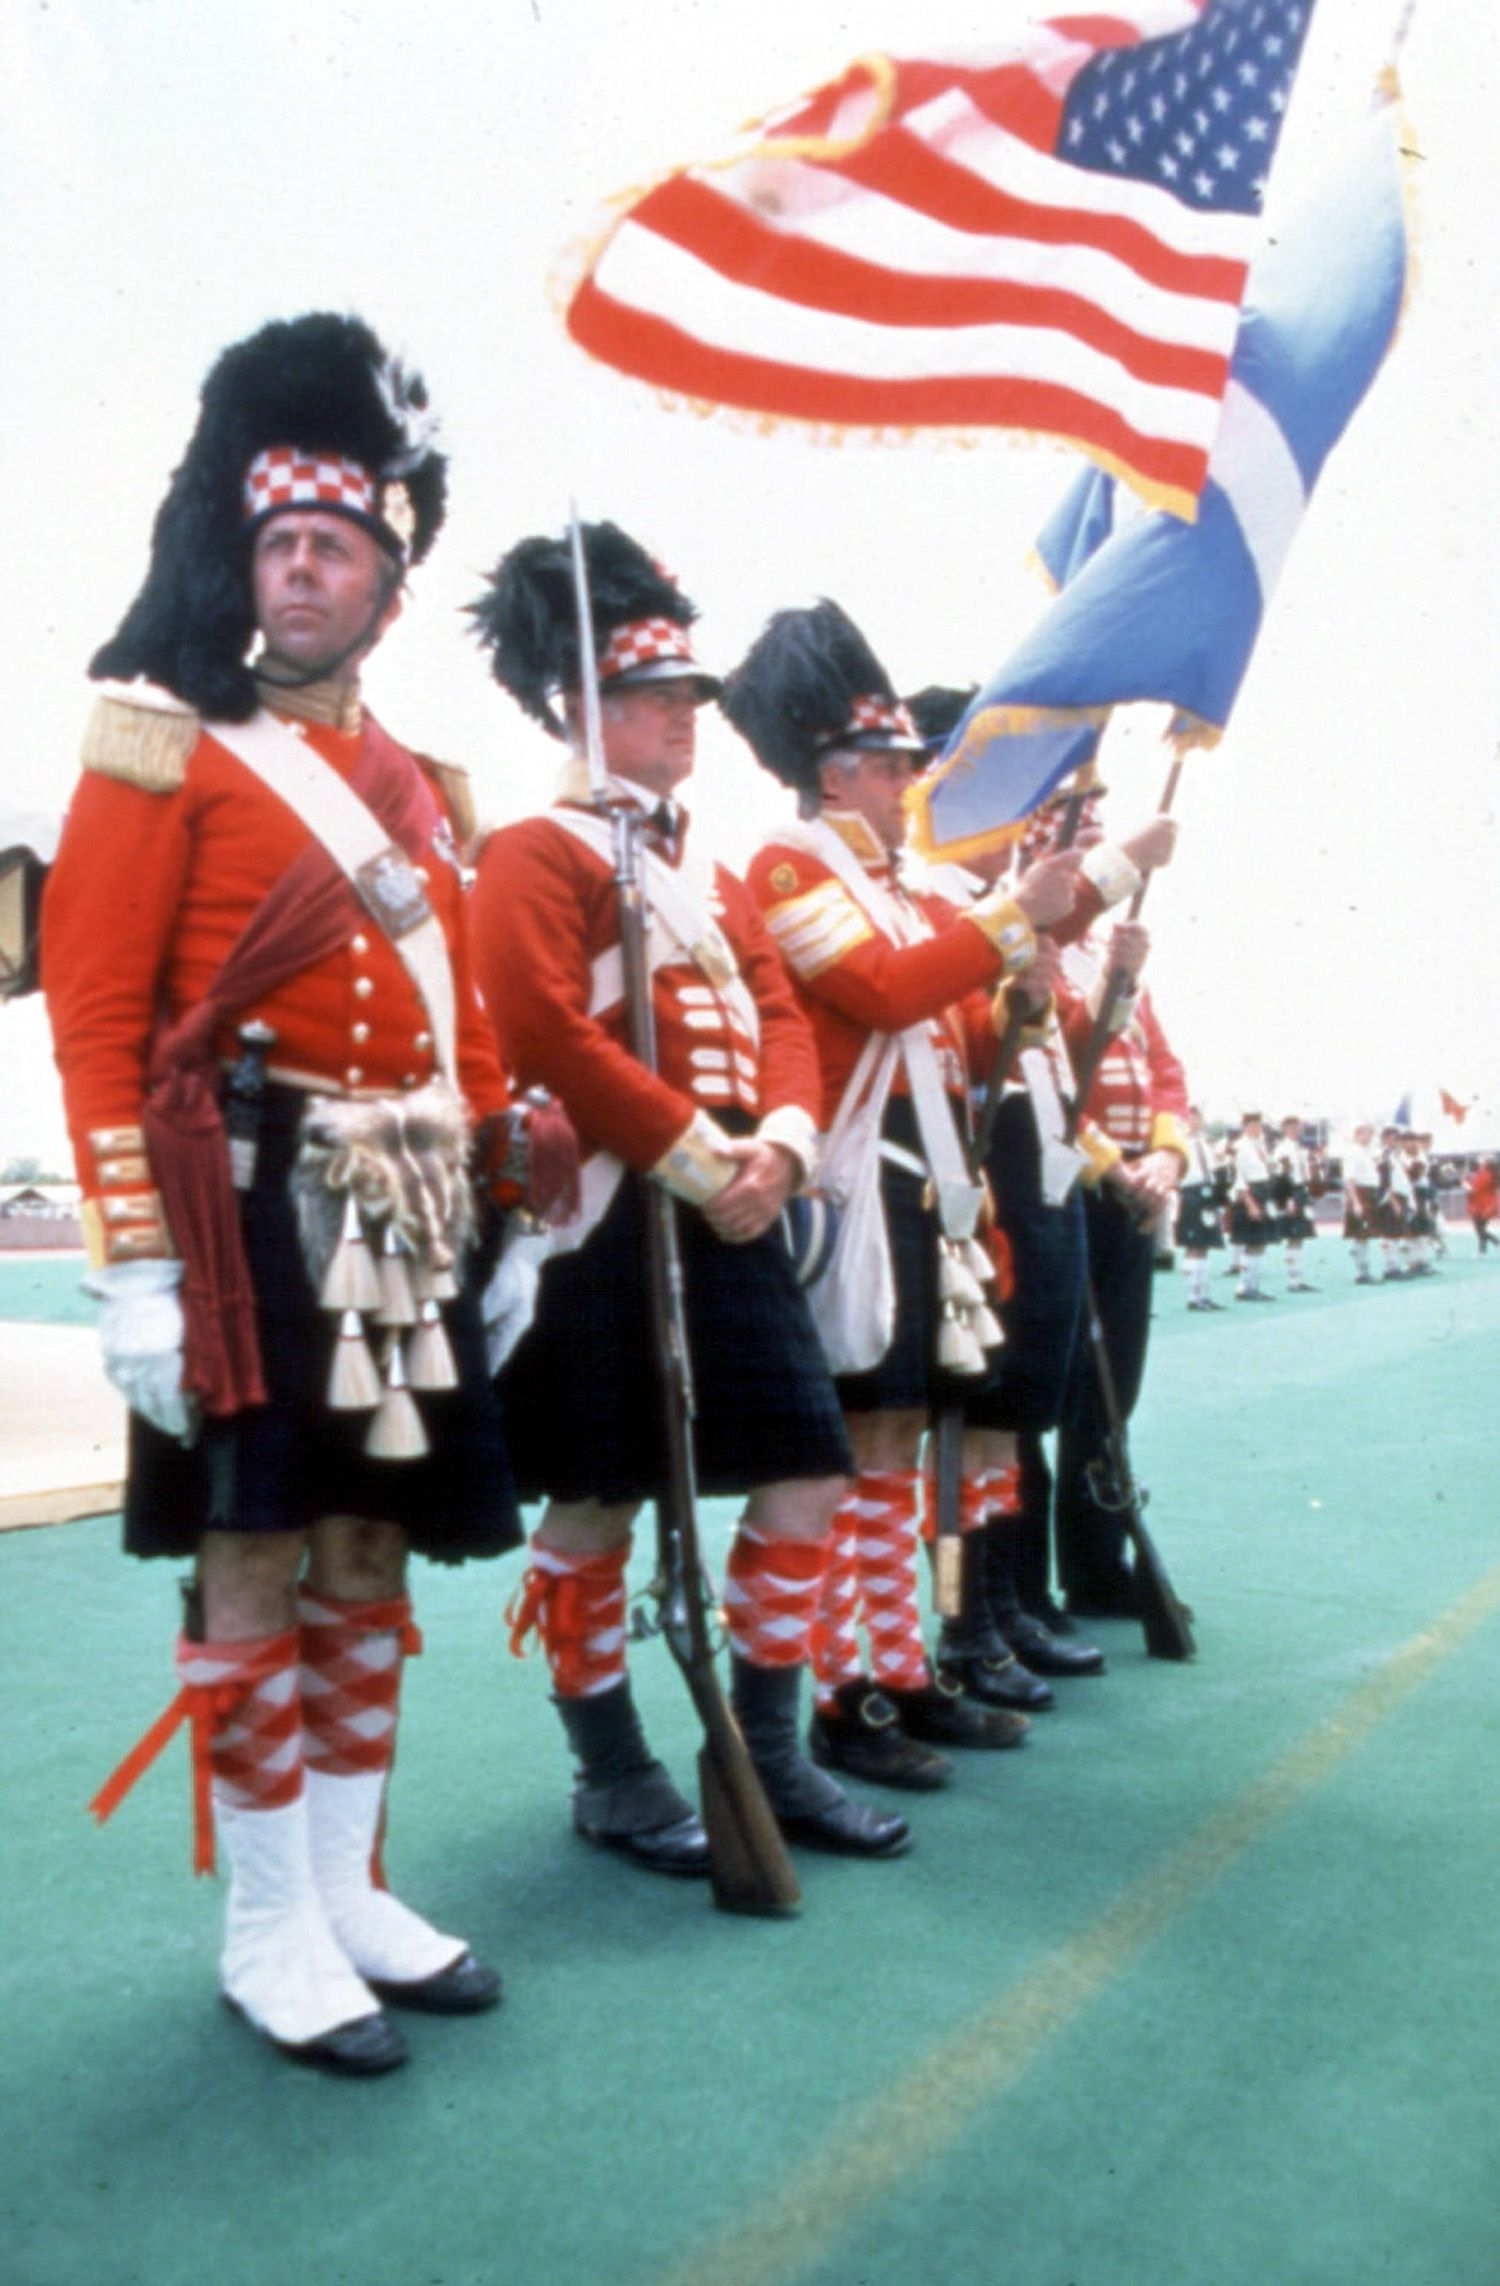 The Texas Scottish Festival & Highland Games is set for